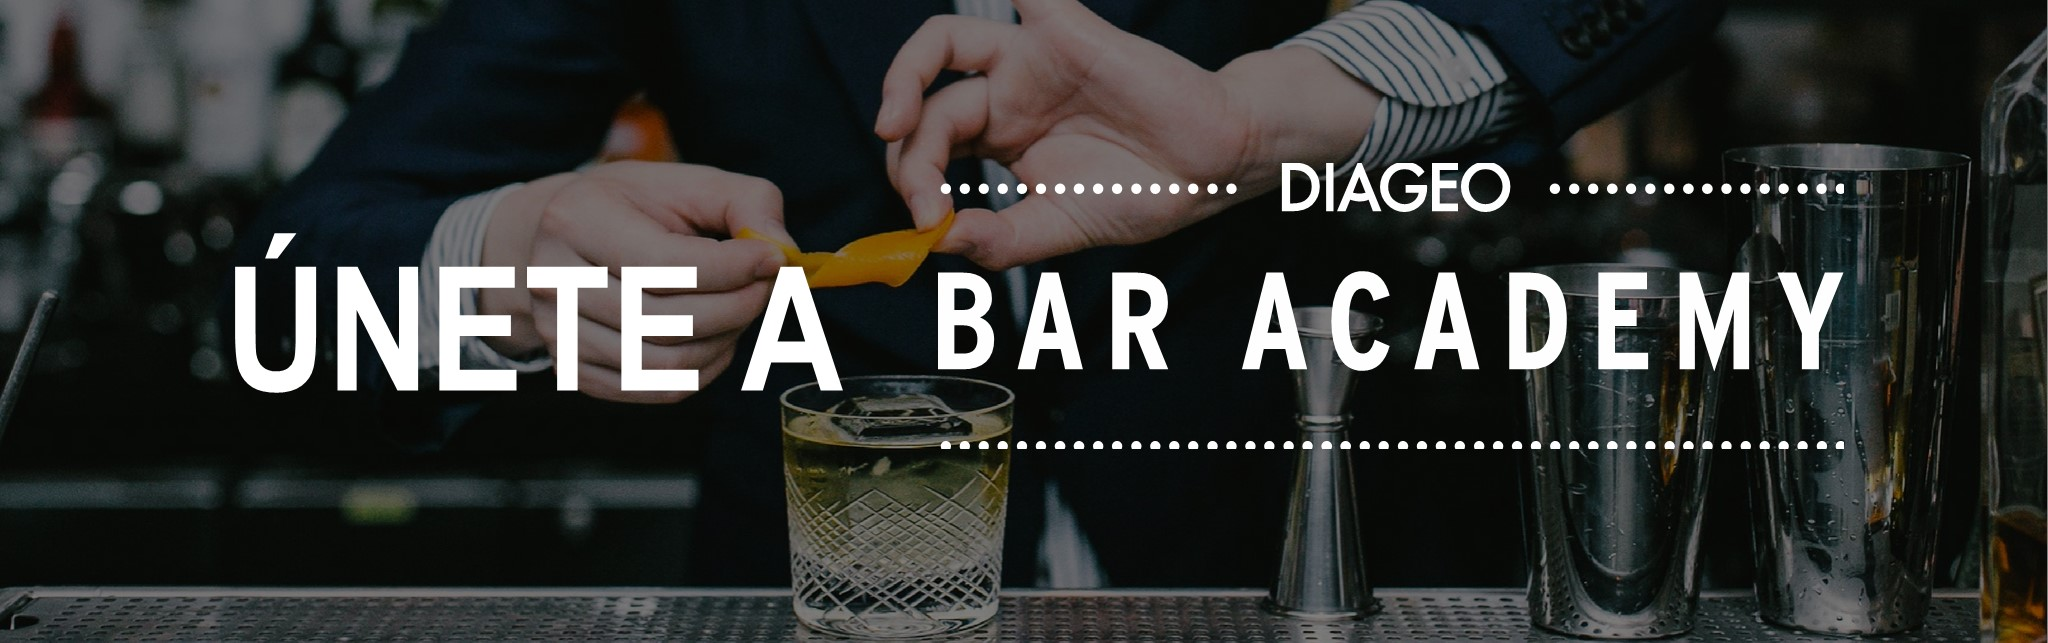 https://www.diageobaracademy.com/en_zz/account/signup/